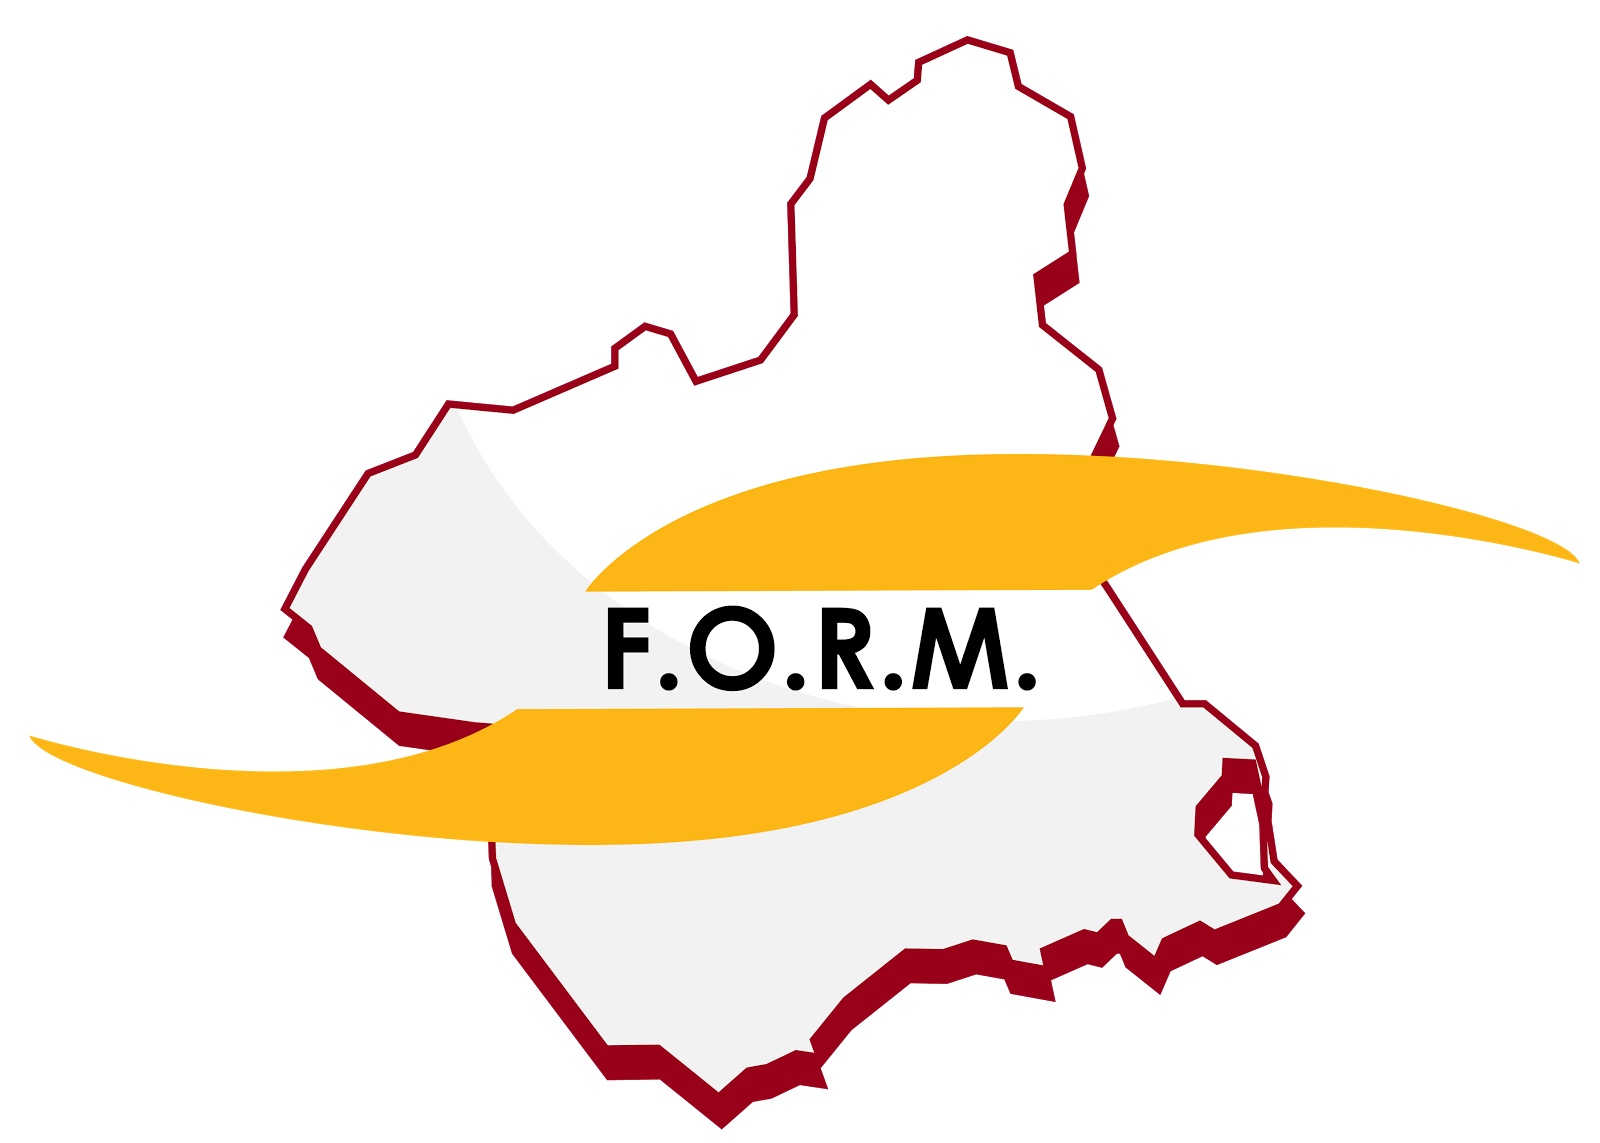 FEDERACIÓN DE ORIENTACIÓN REGIÓN DE MURCIA